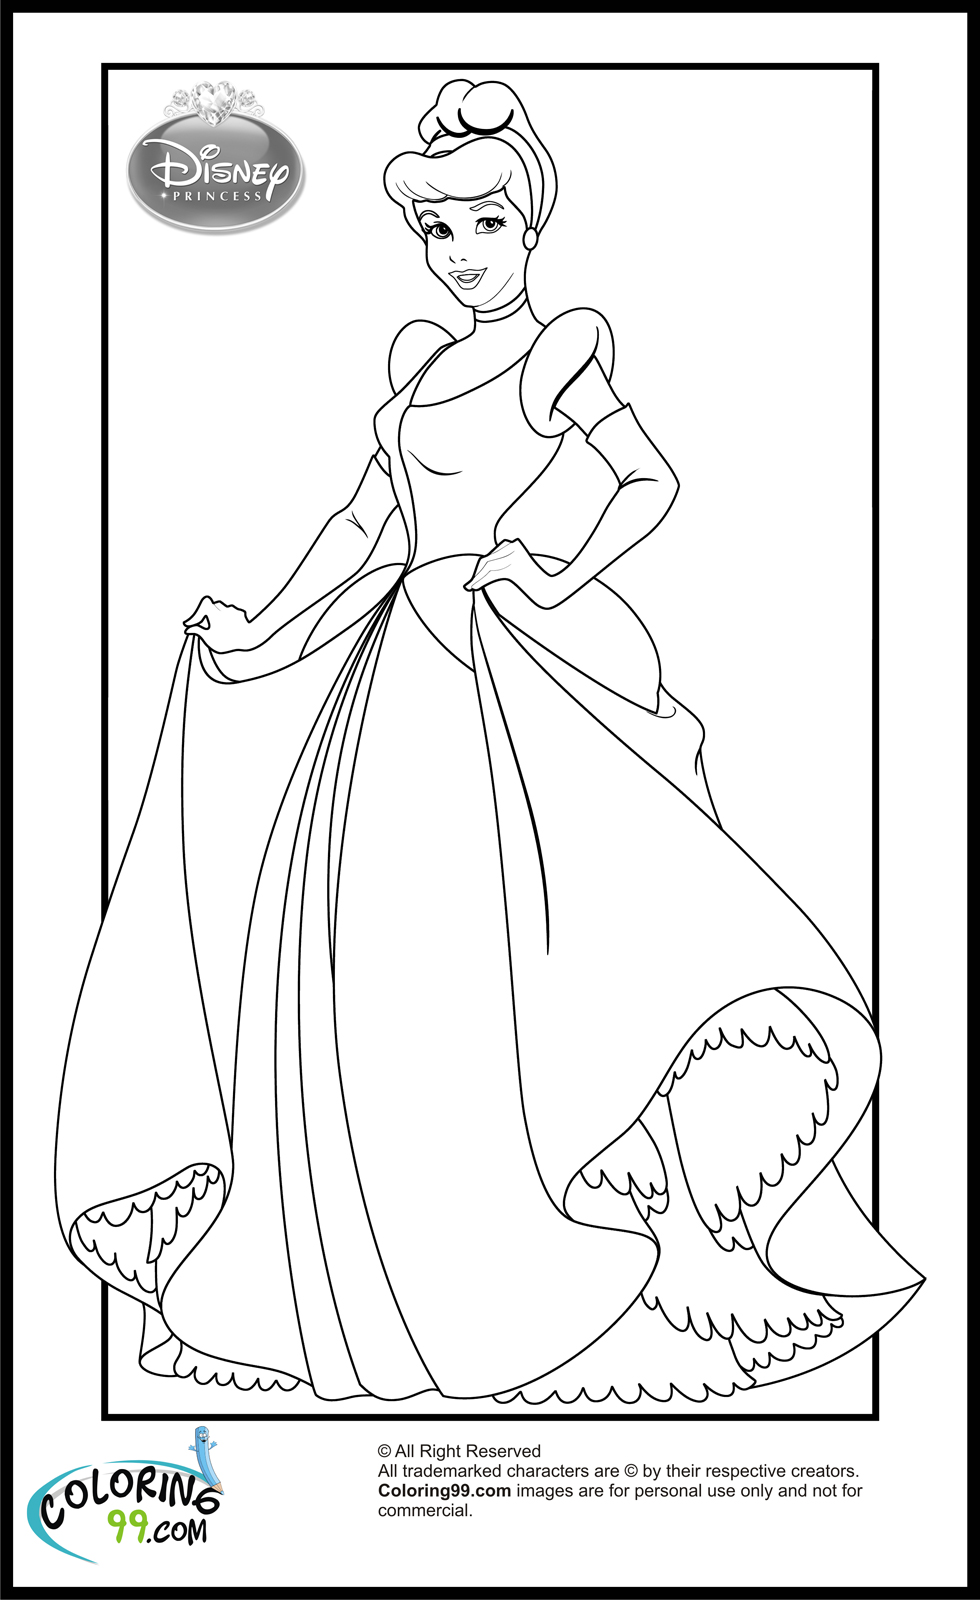 coloring pages of princesses printable coloring pages disney princess coloring pages of princesses coloring pages